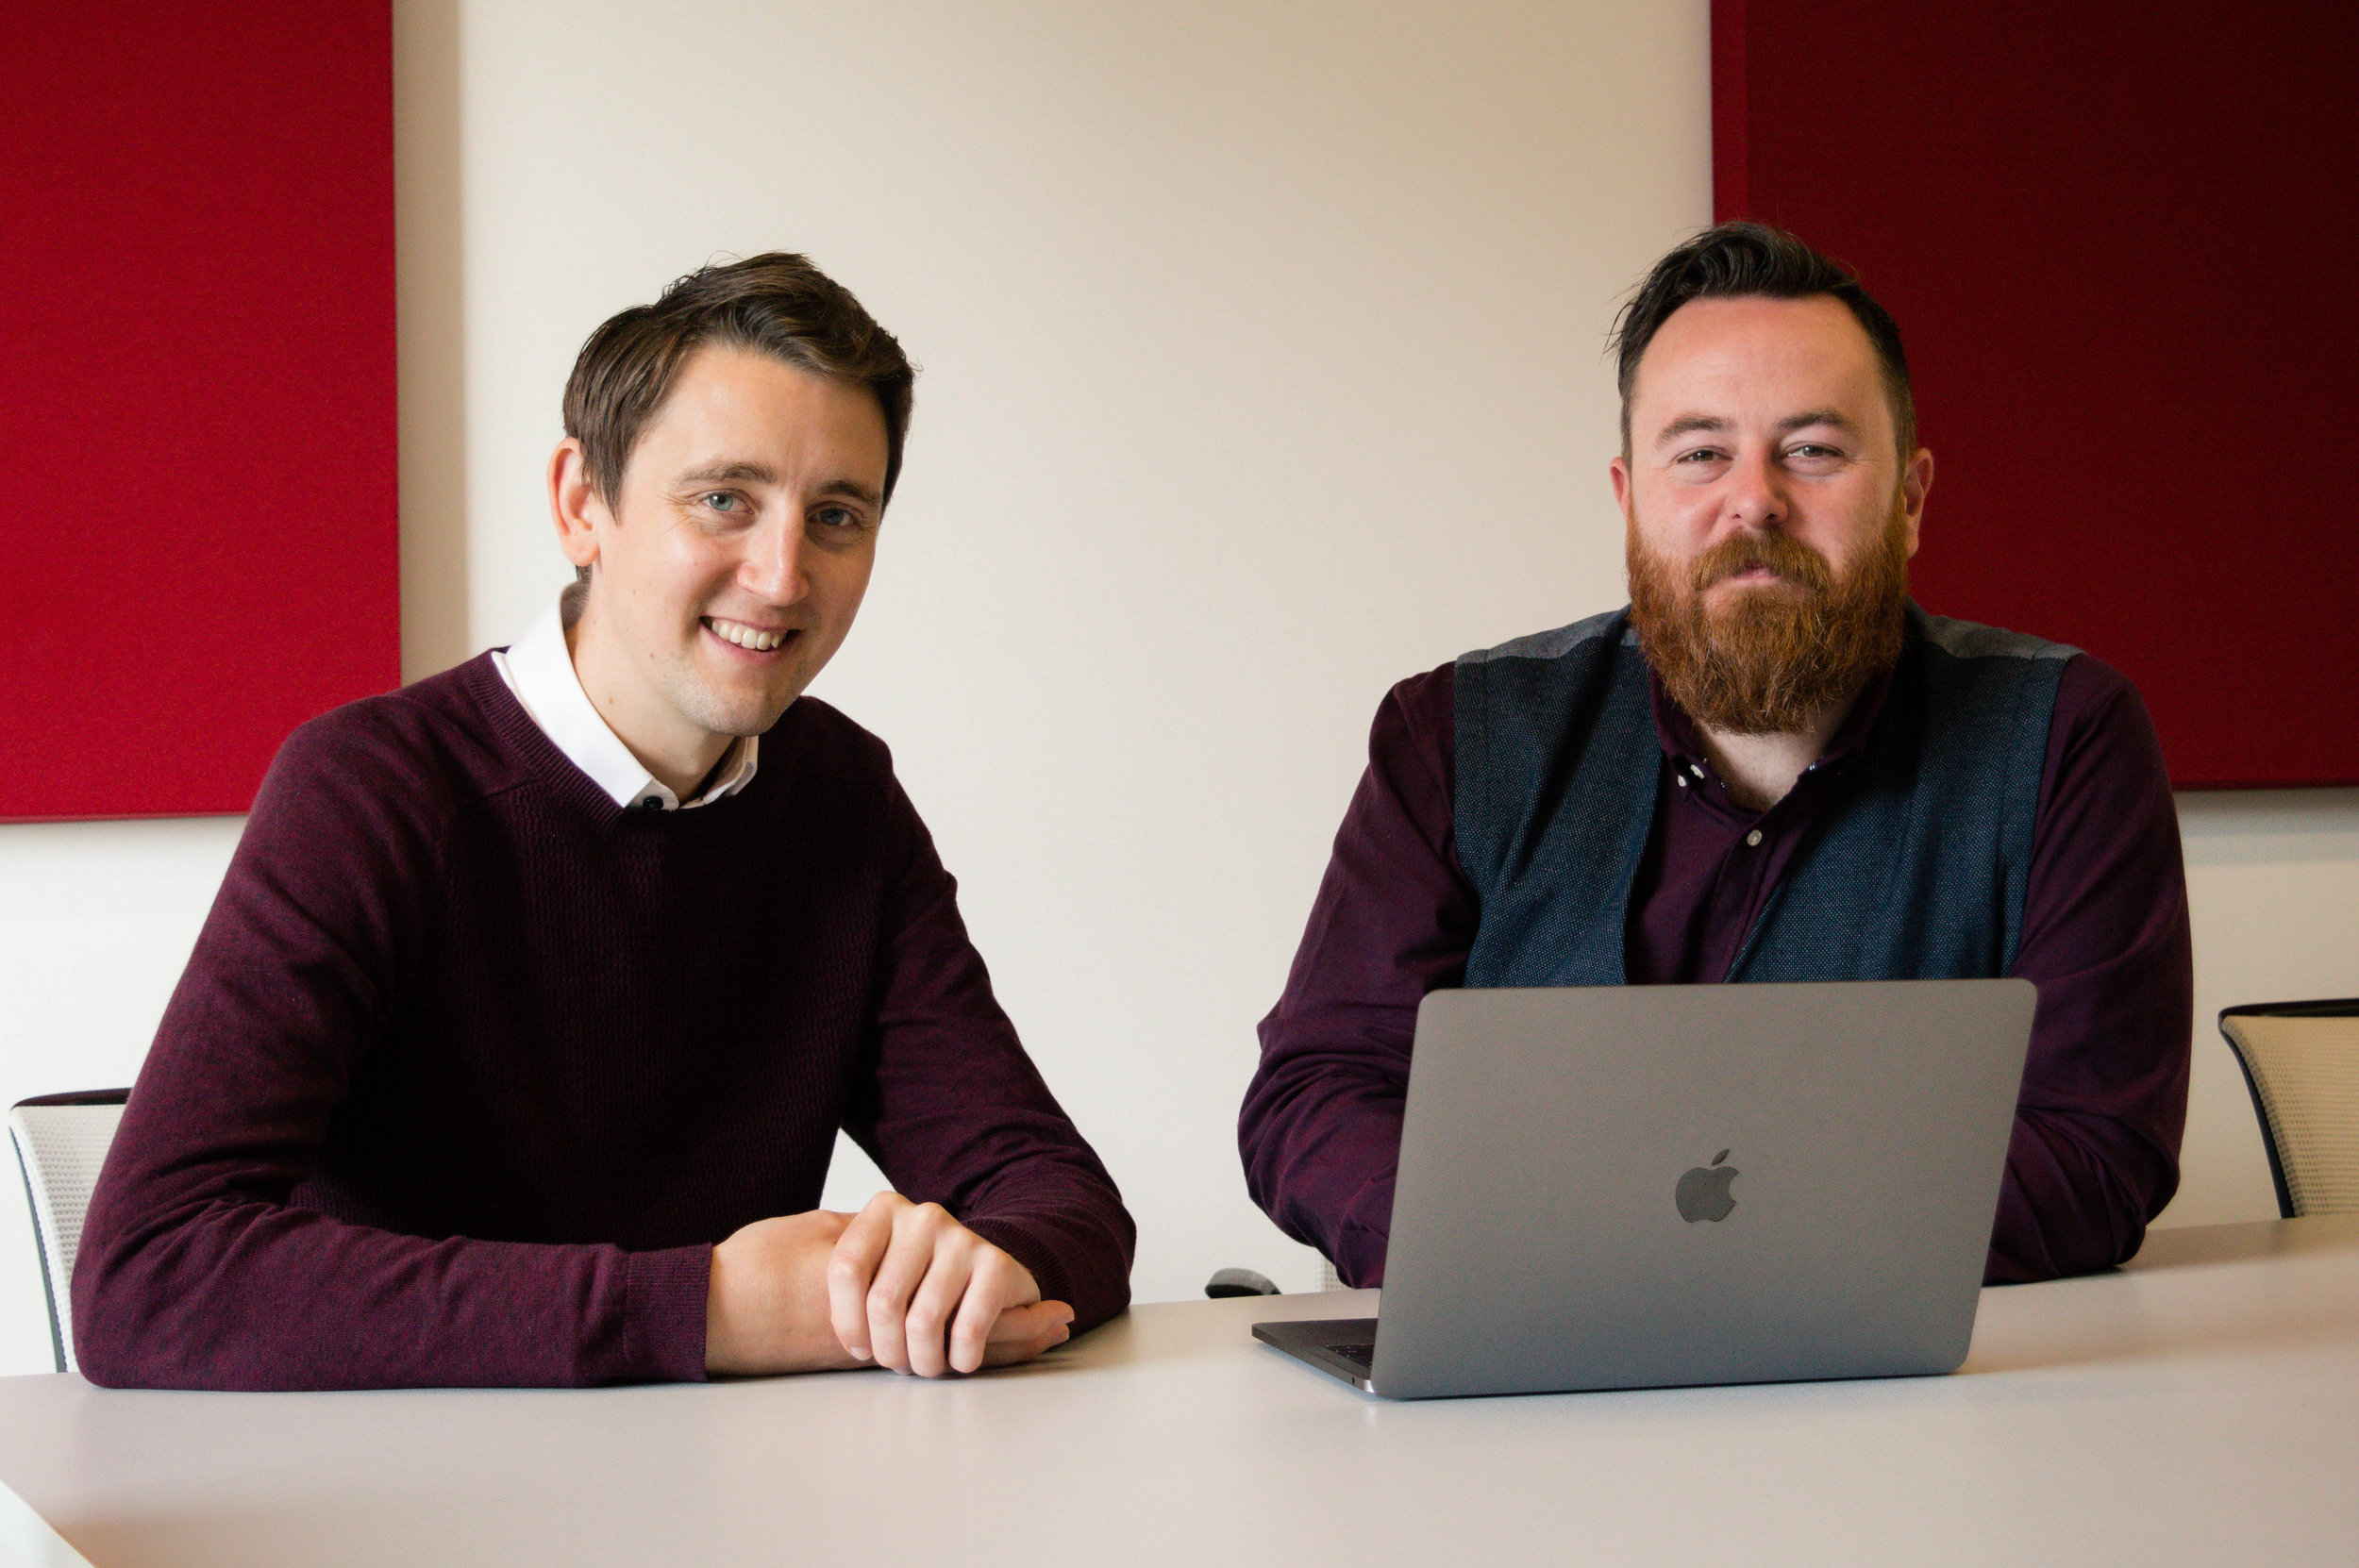 attracts_new_talent_welsh_health_technology_firm.jpg